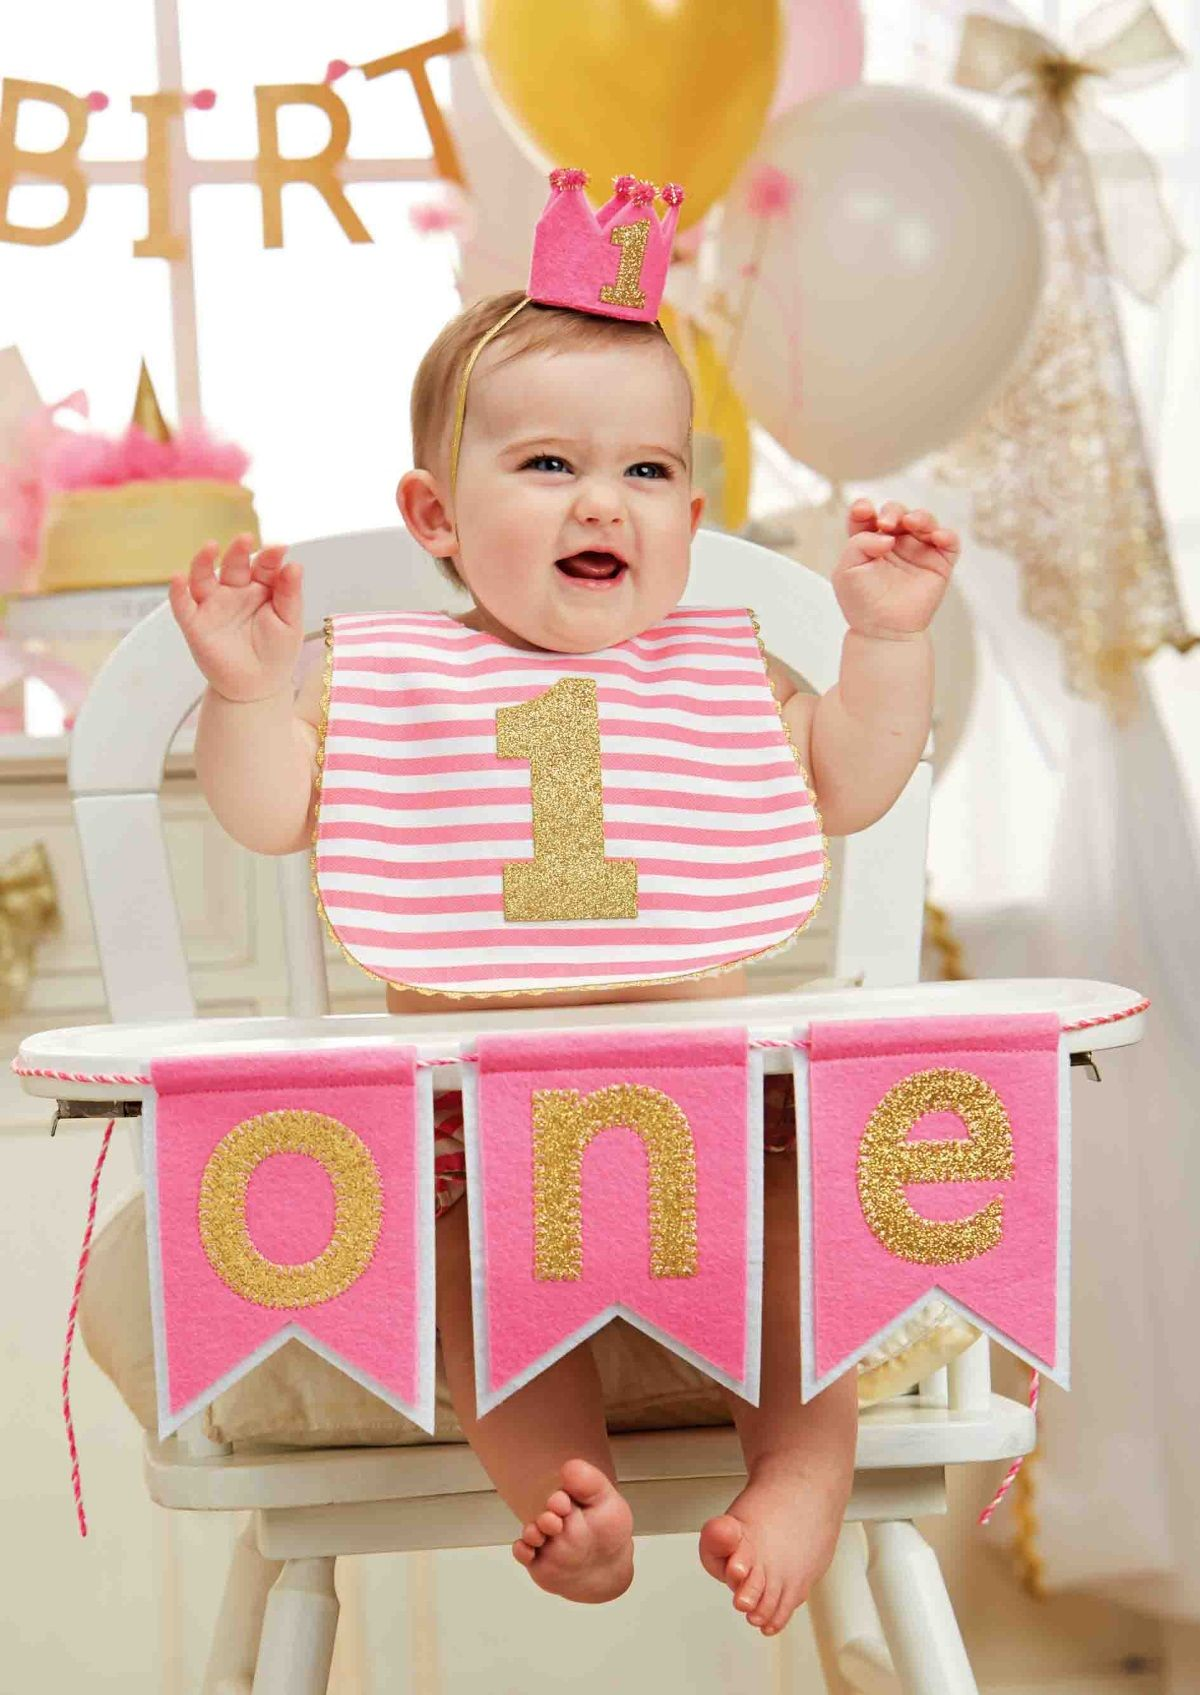 Decorate baby's high chair for her big first birthday with